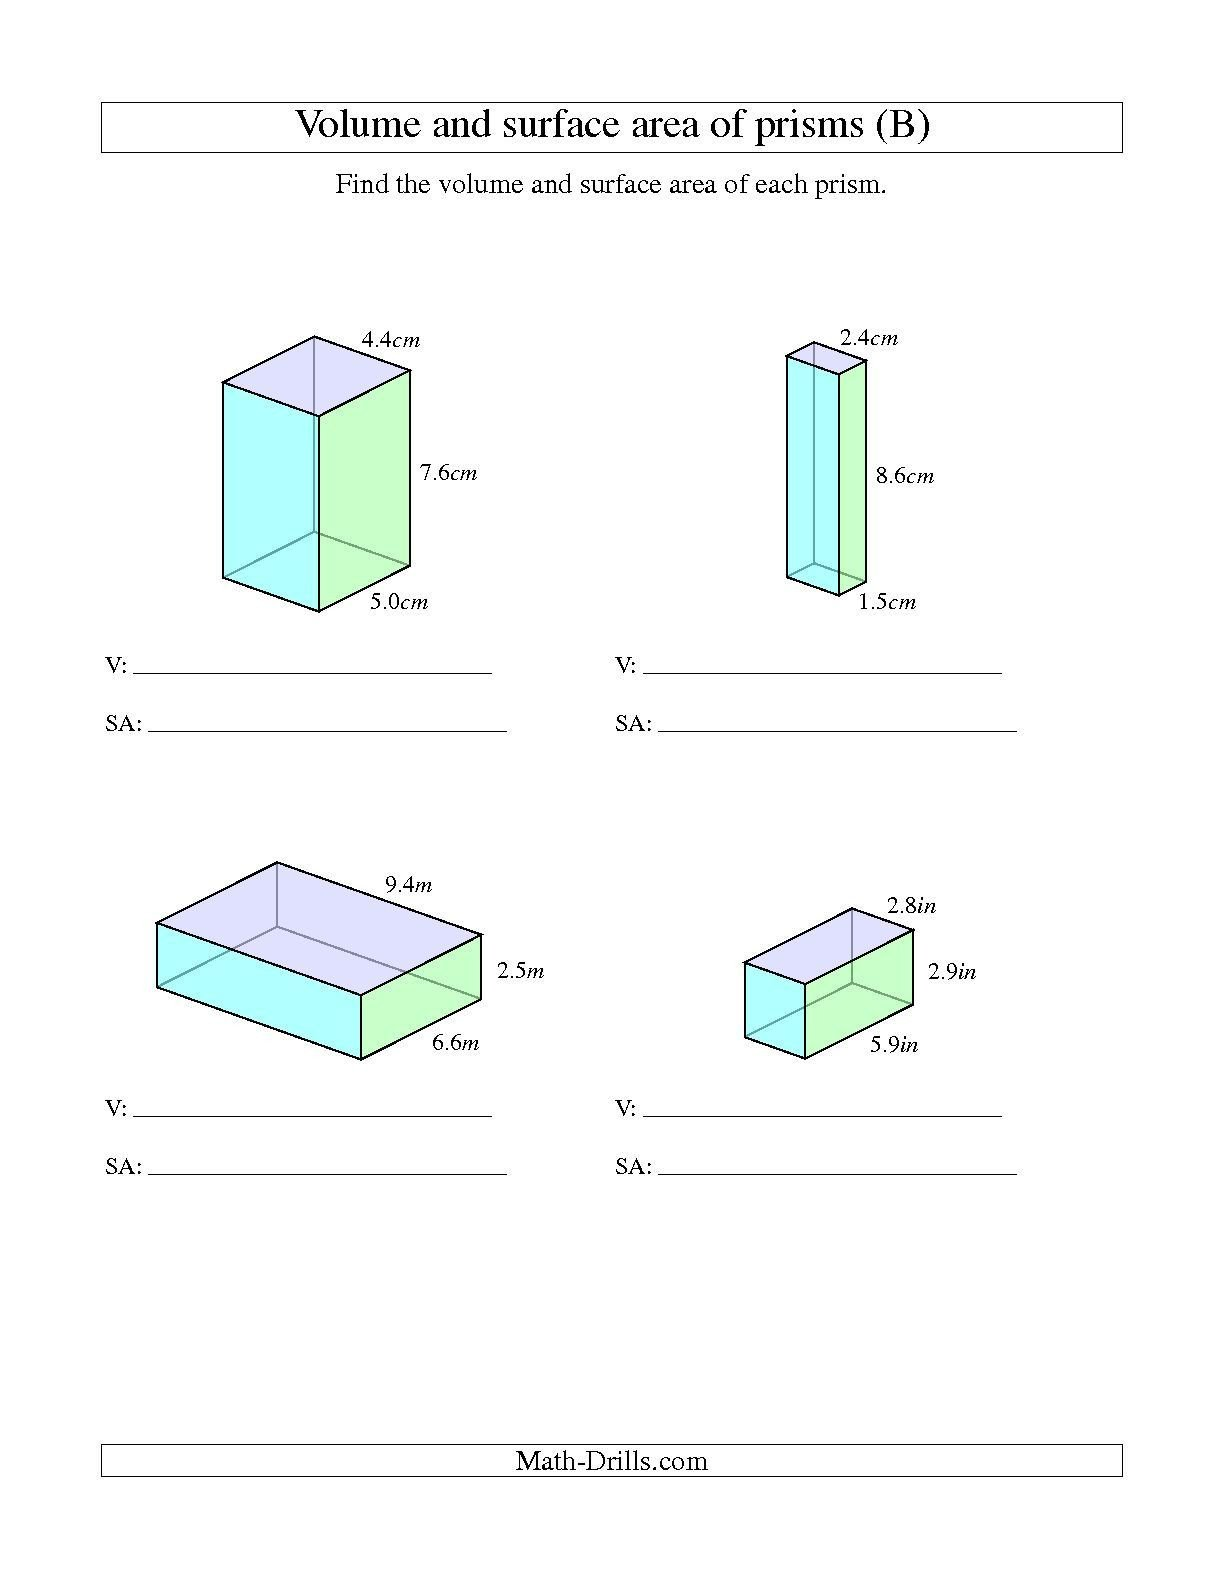 Volume Of Irregular Shapes Worksheet the Volume and Surface area Of Rectangular Prisms with